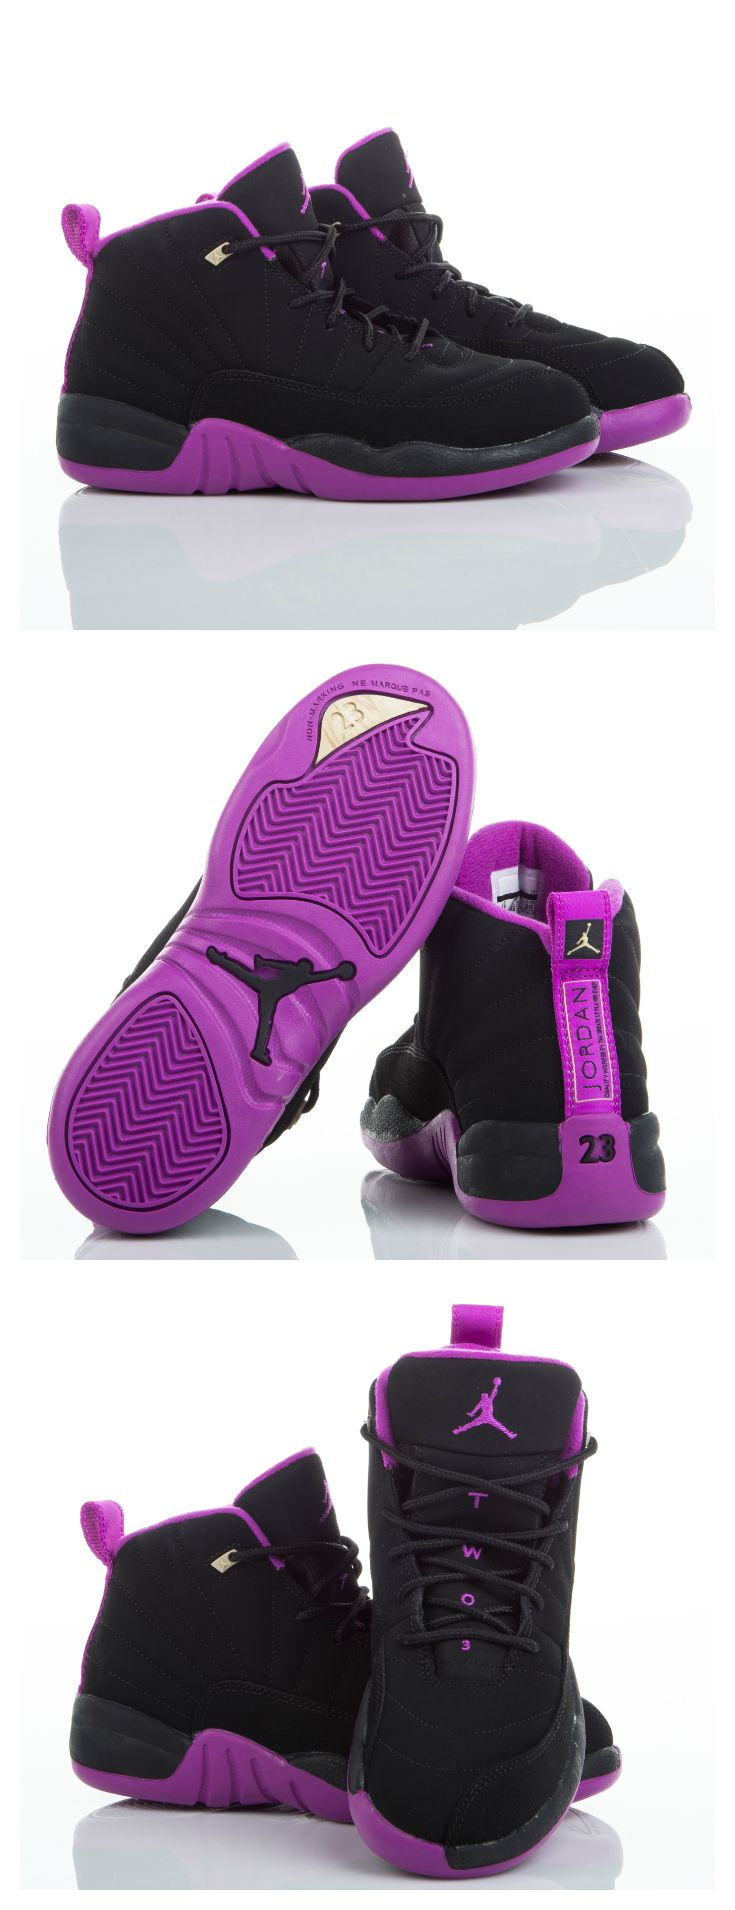 My favorite color Purple Offset the summer heat with the cool Jordan Retro  available in girls' sizes.